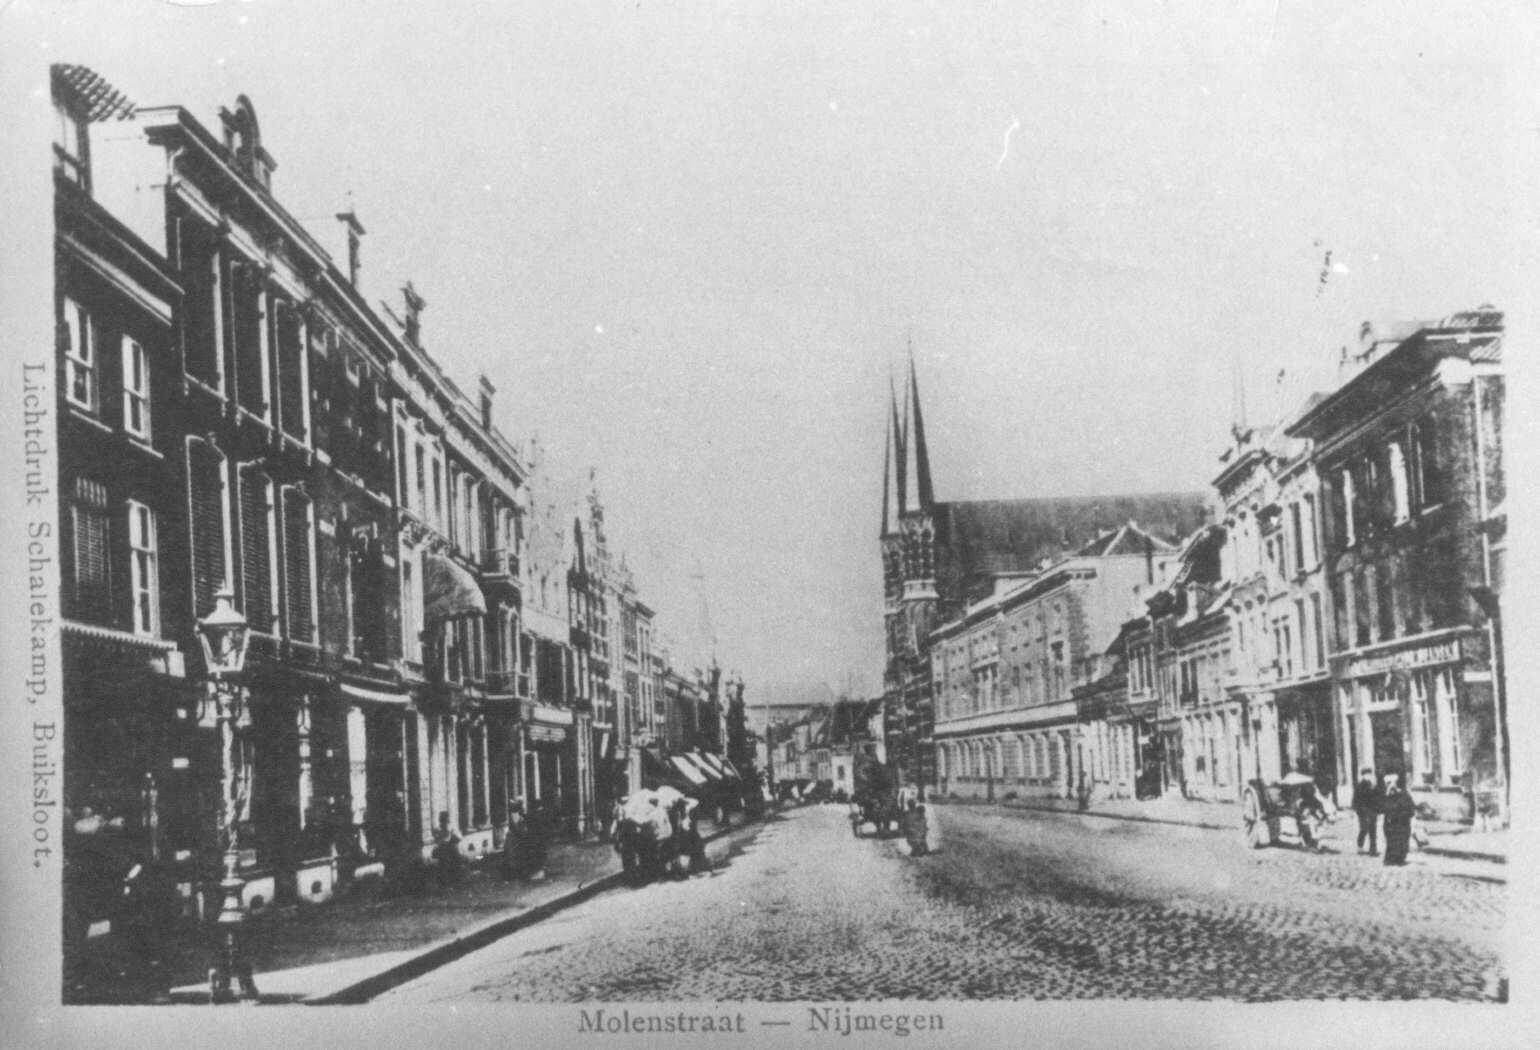 Molenstraat r. centrum in 1895 (RAN,